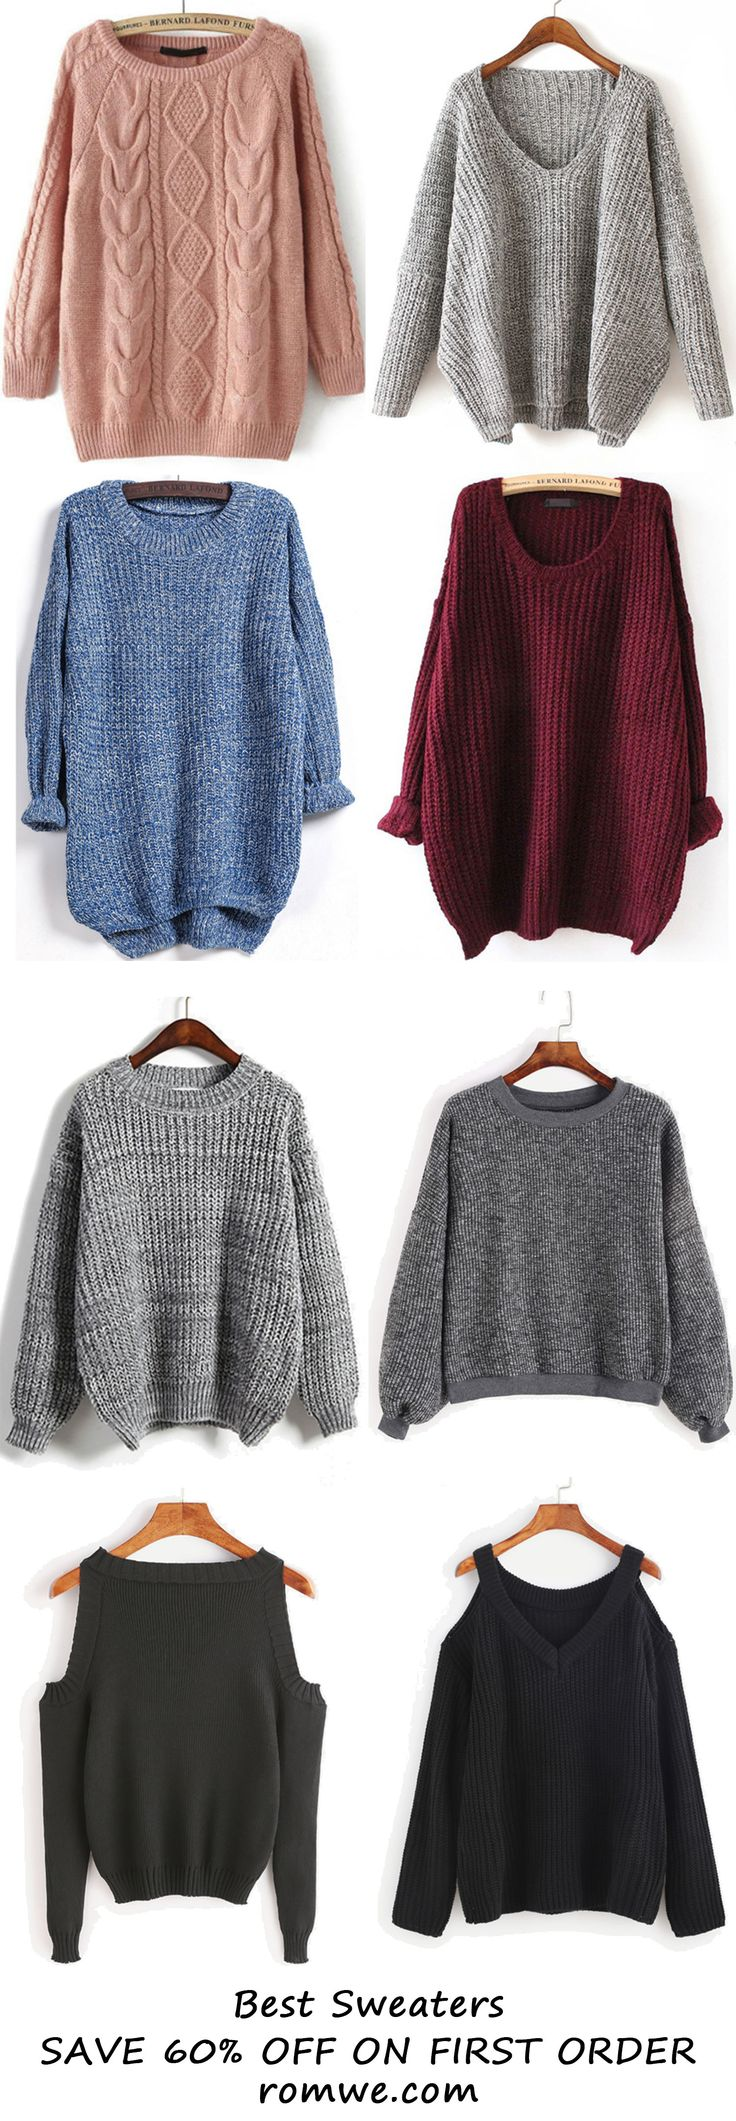 Fall & Winter Sweaters Collection 2016 from romwe.com